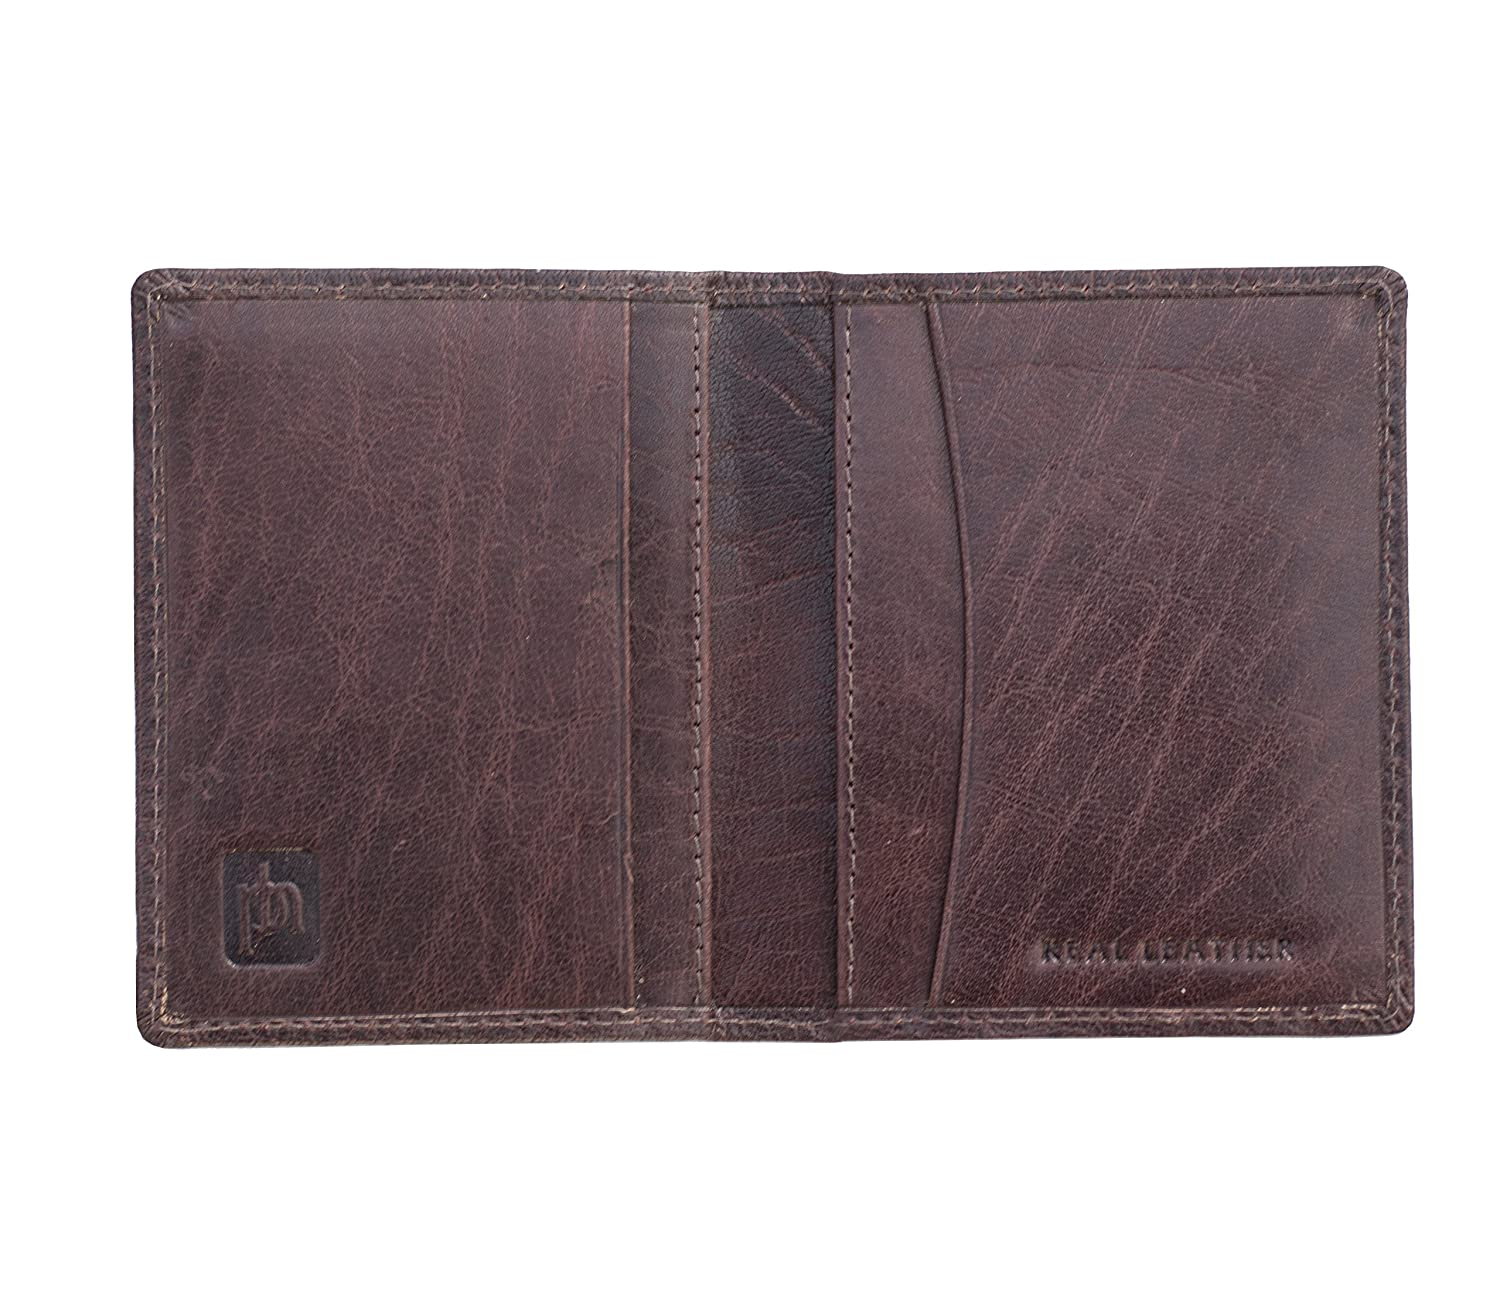 a8562876b52e2 Prime Hide Men s Luxury Brown Leather RFID Blocking Credit Card Holder  Wallet  Amazon.co.uk  Luggage